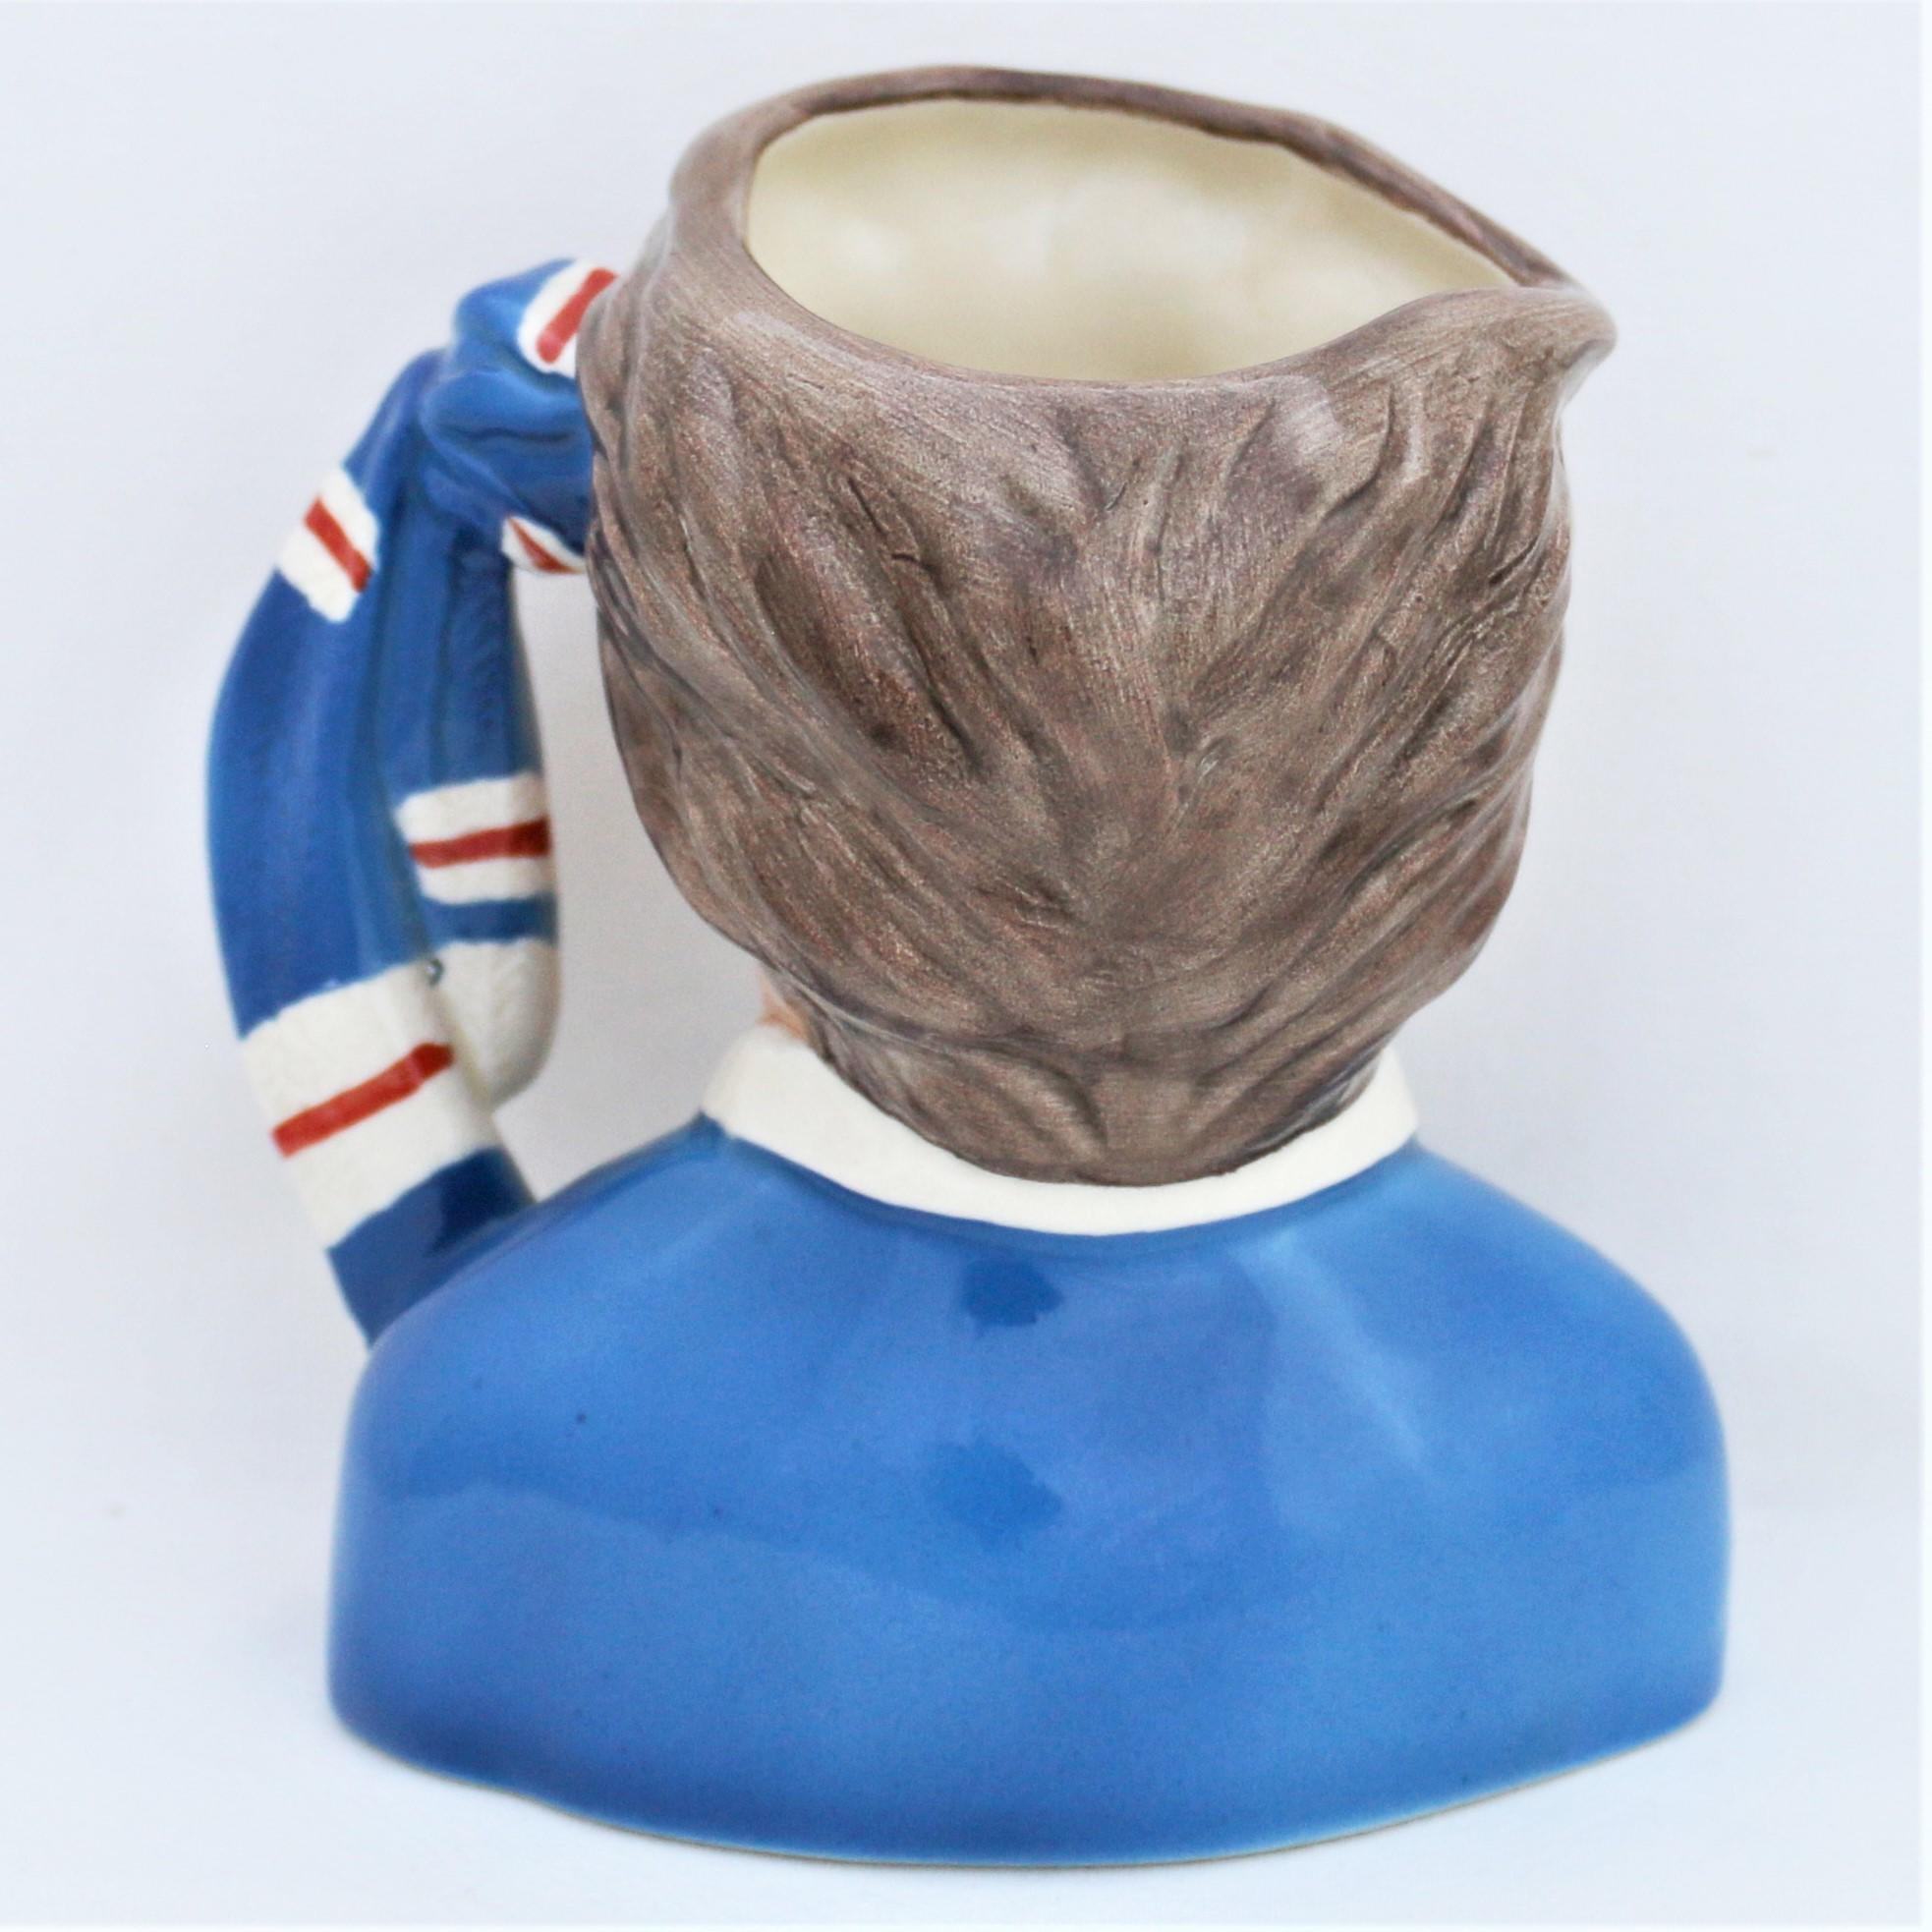 Royal Doulton Rangers Football Supporter's Character Jug D6929 back